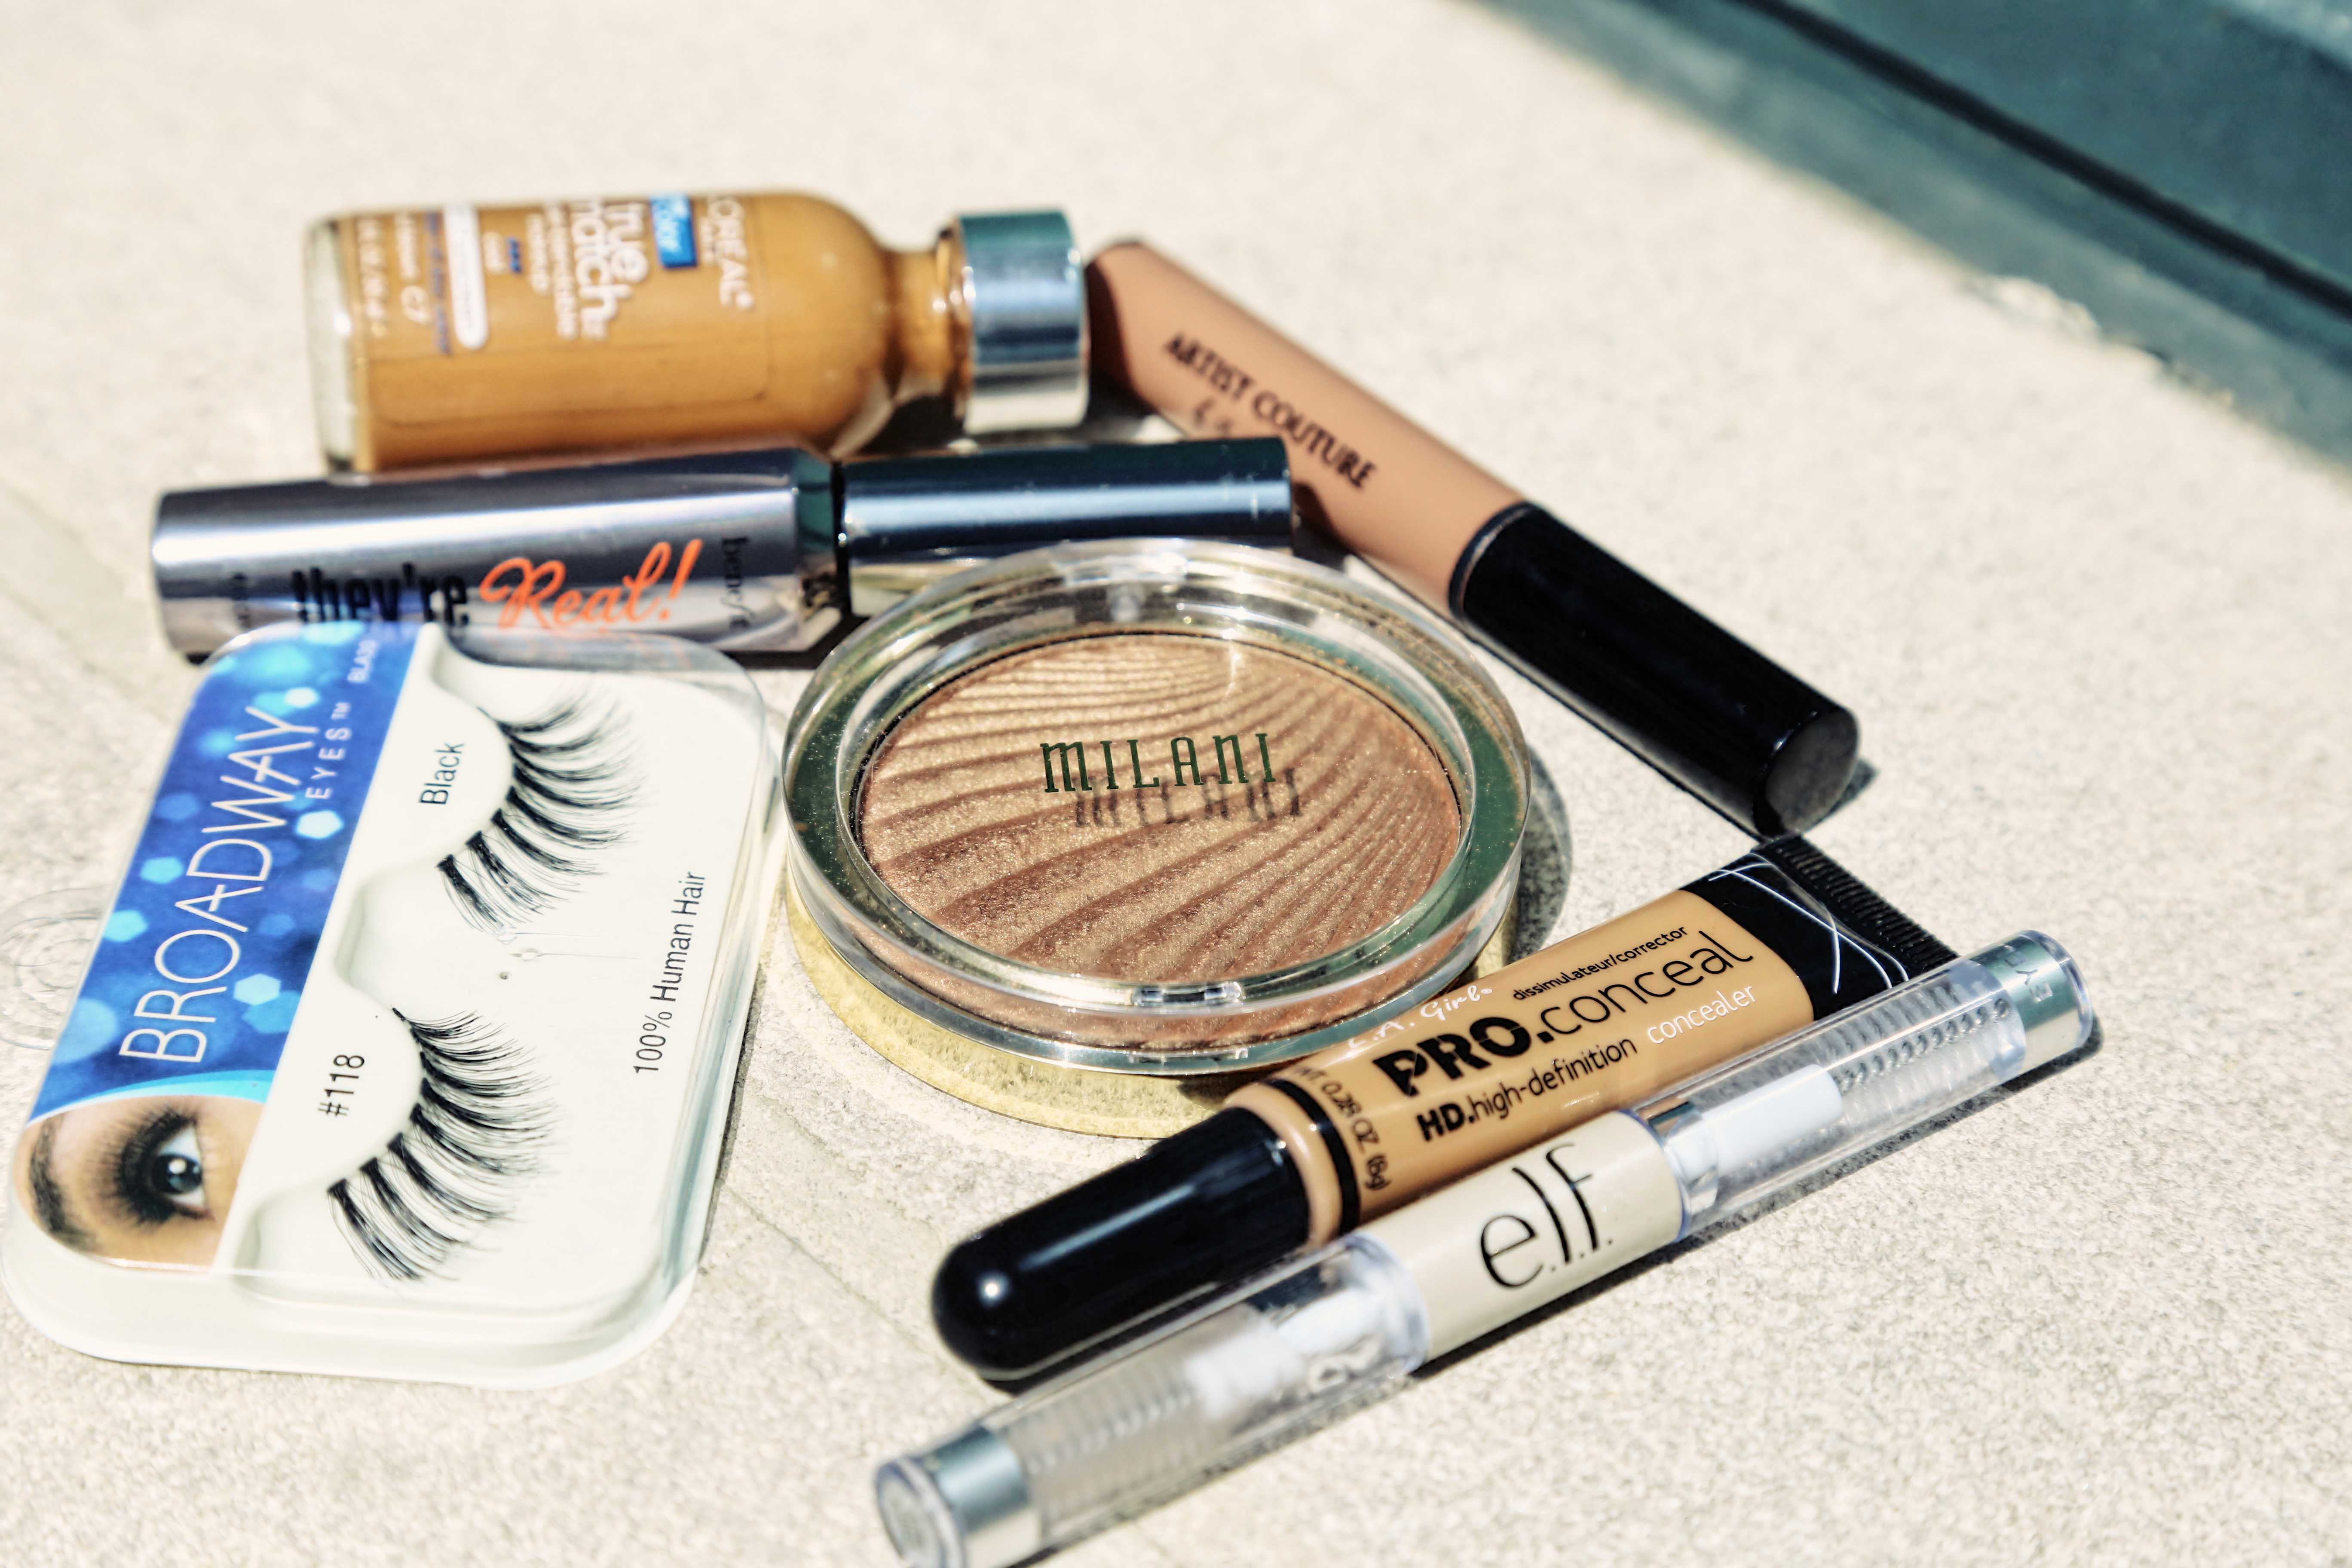 The College Girl's Guide to Makeup